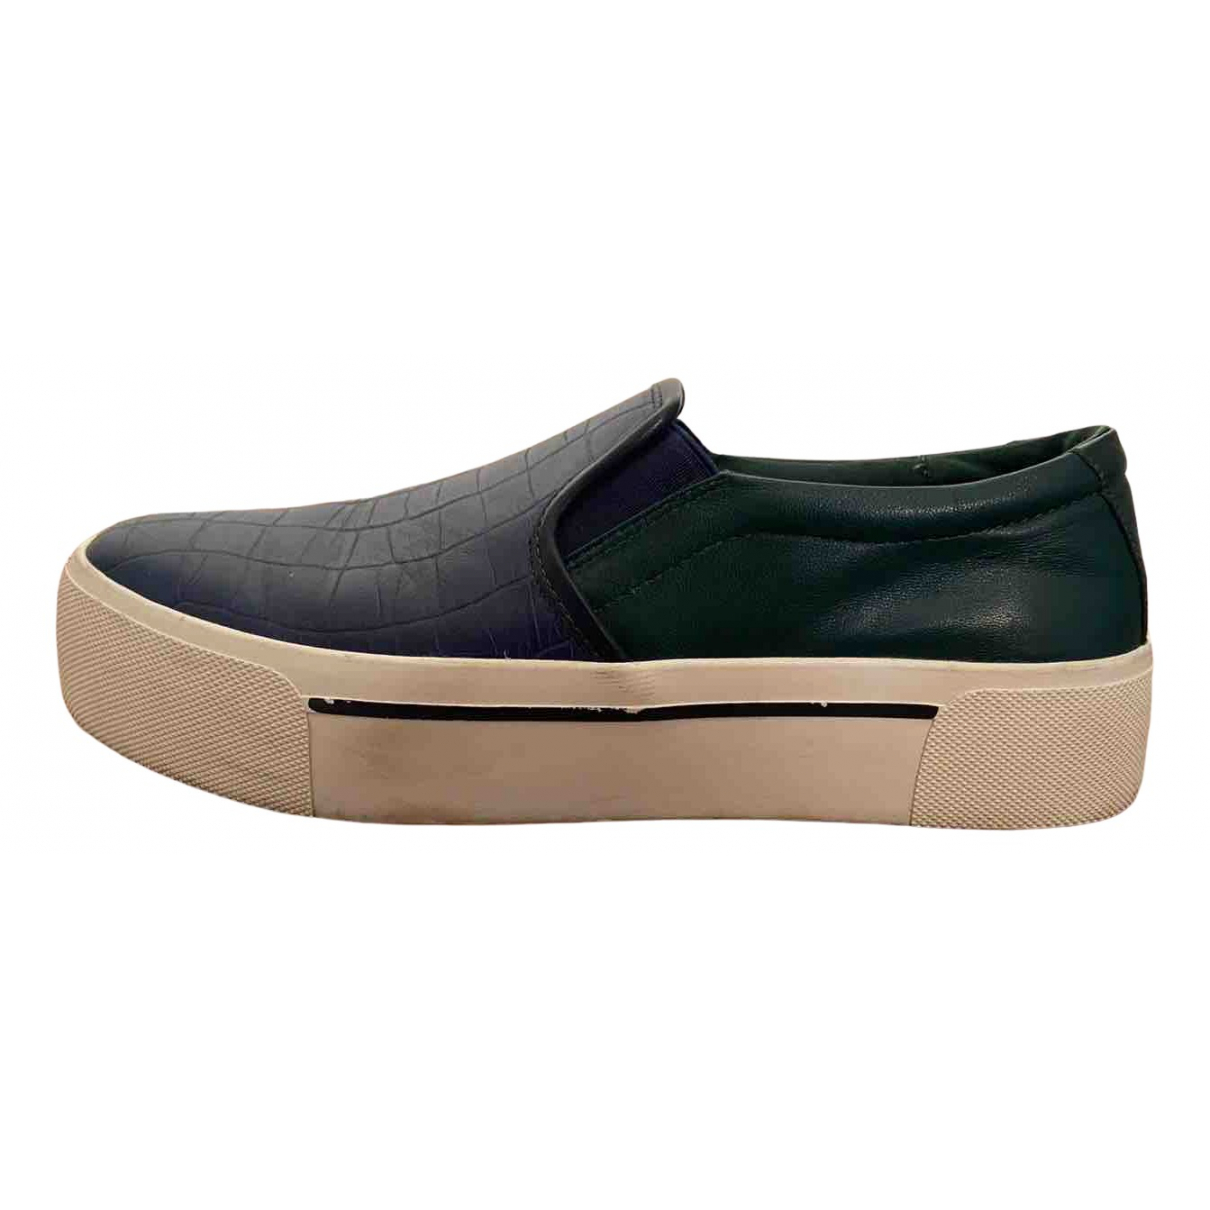 Dkny N Blue Leather Flats for Women 40 EU